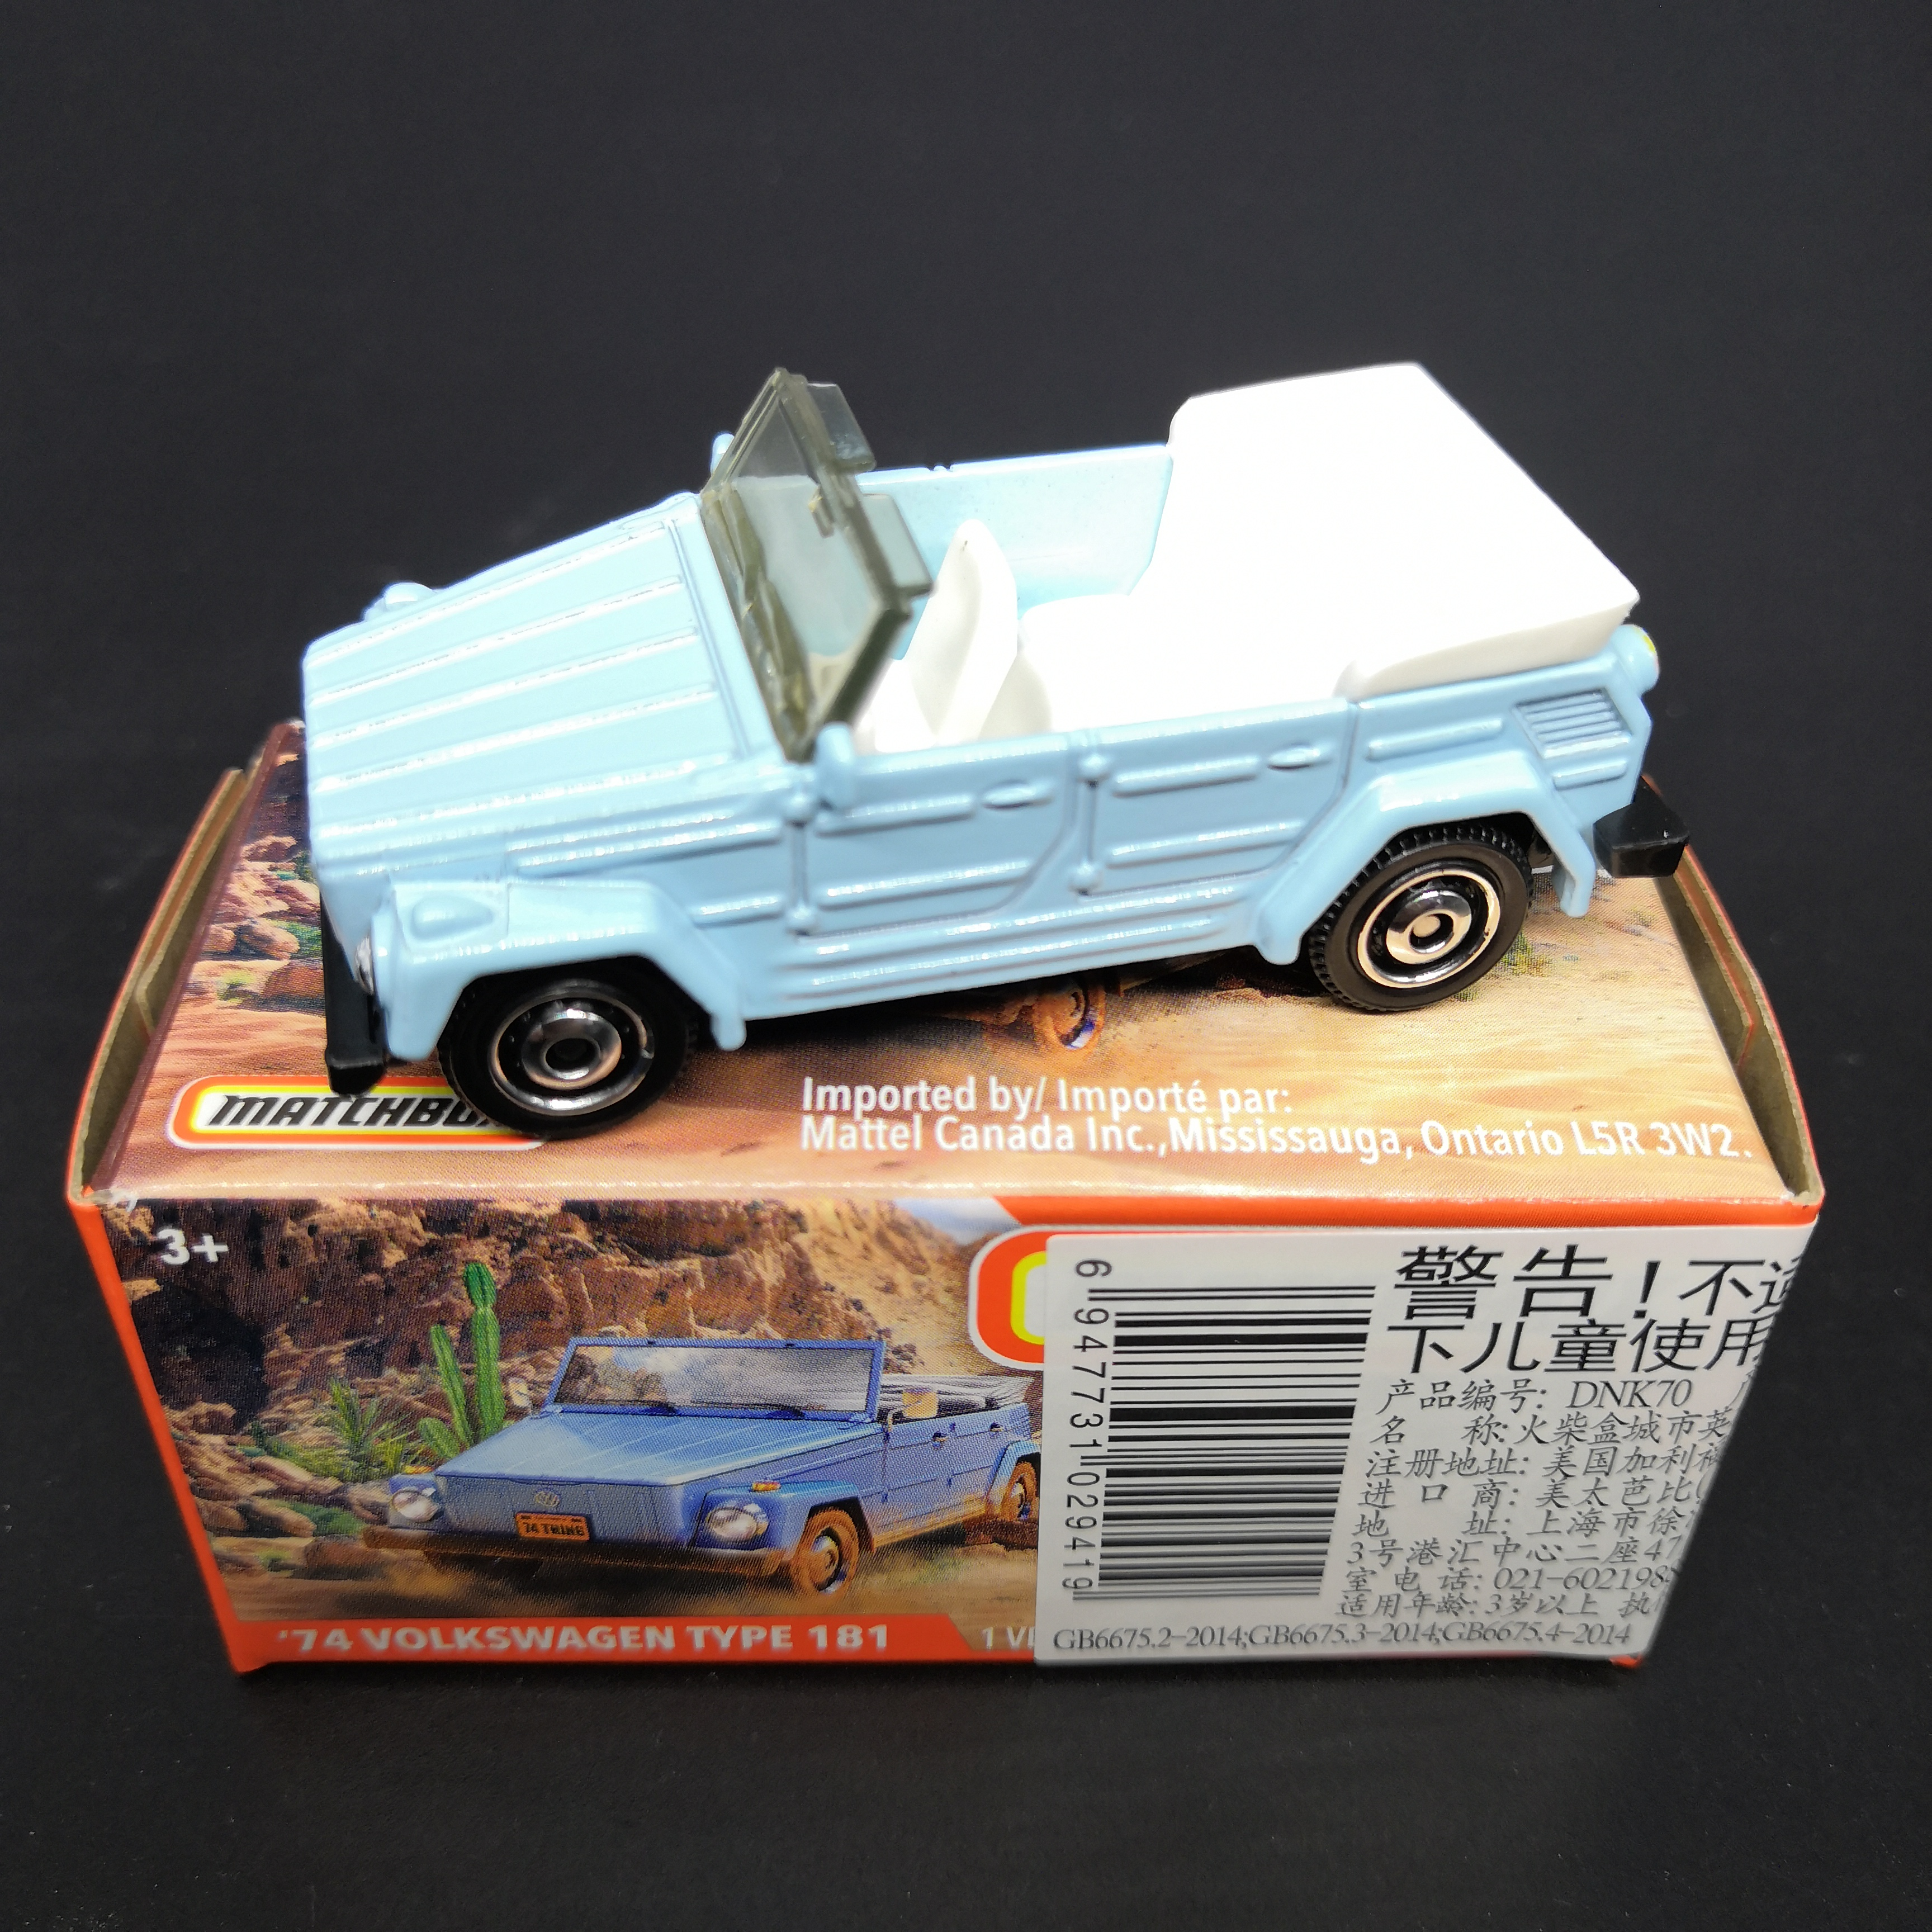 2019 Matchbox Car 1:64 Sports Car 74 VOLKSWAGEN TYPE 181 Metal Material Body Race Car Collection Alloy Car Gift